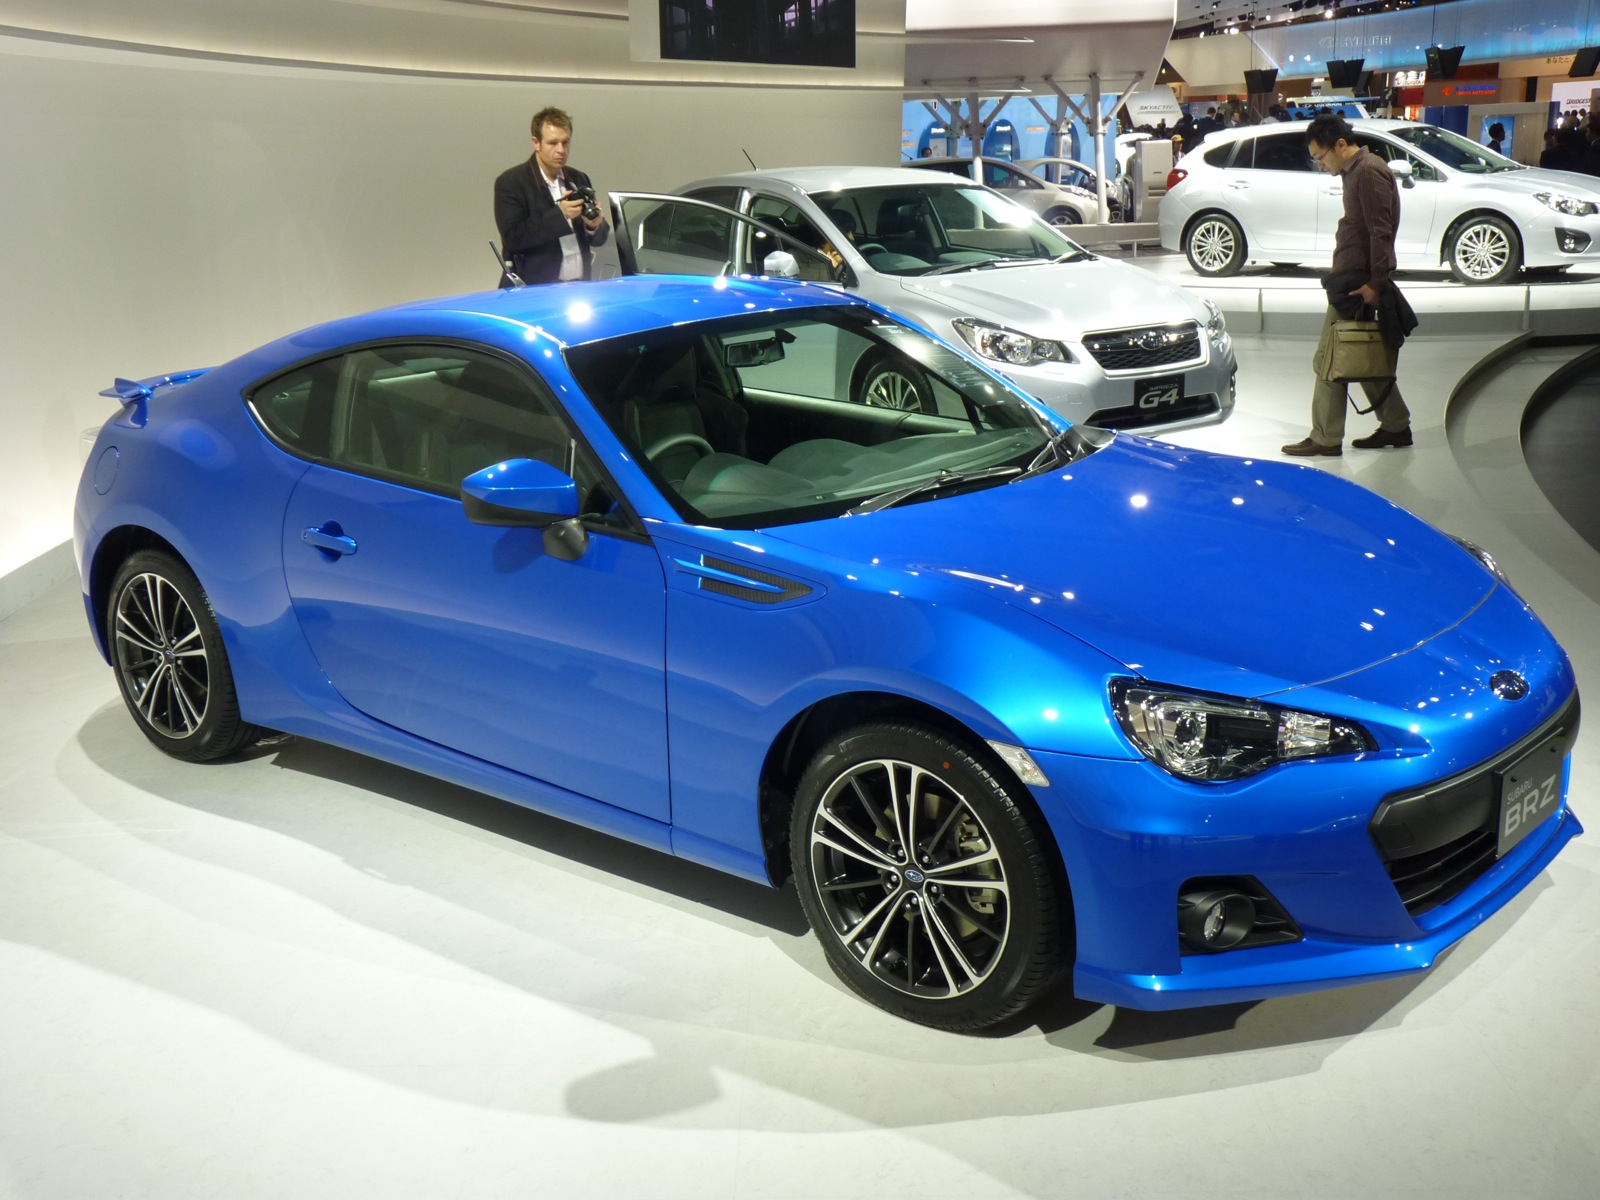 Bmw Of Dallas >> 2013 Subaru BRZ Live Photos And Video: 2011 Tokyo Motor Show